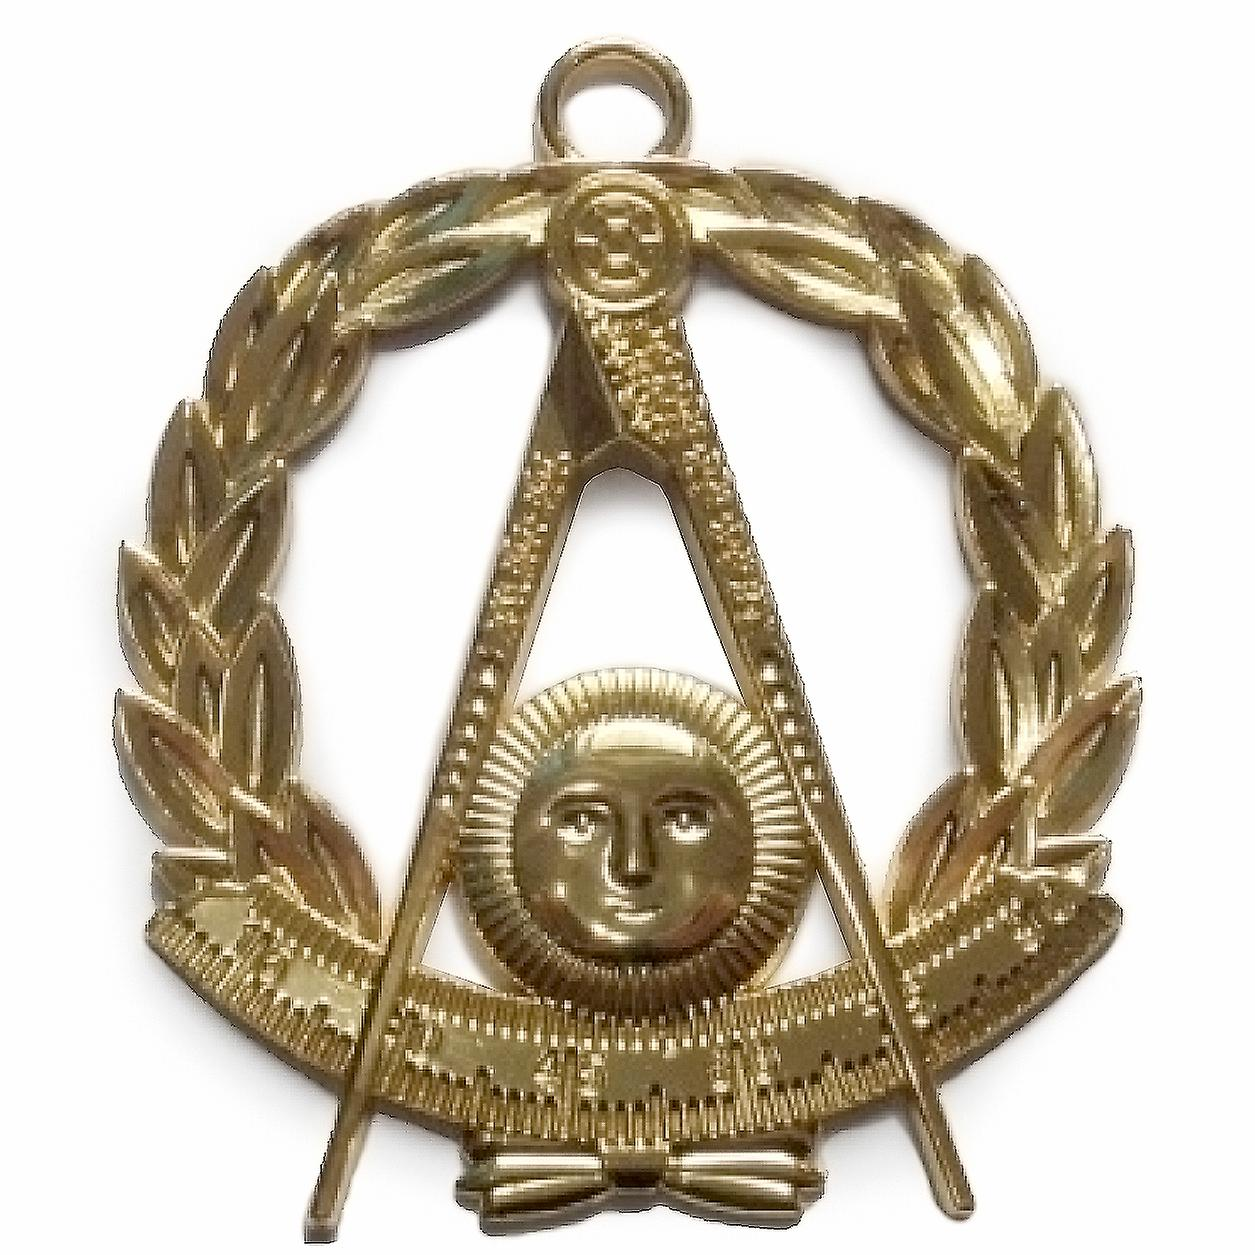 Masonic Collar Past Master Jewel